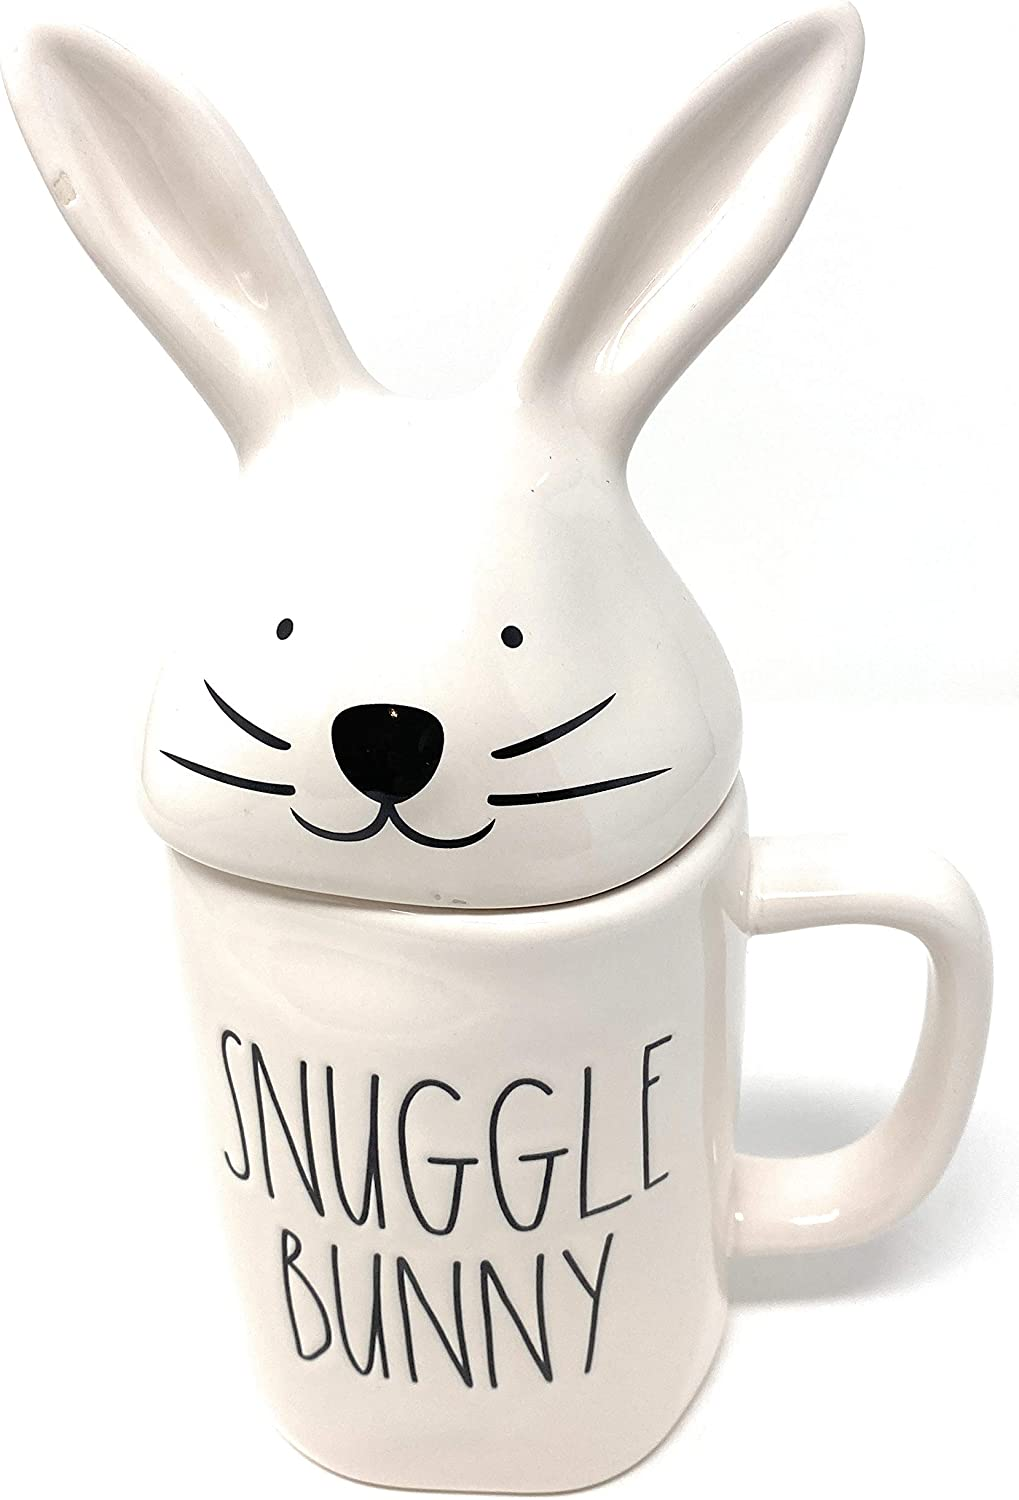 Rae Dunn Our shop most Challenge the lowest price popular SNUGGLE BUNNY with Mug Lid